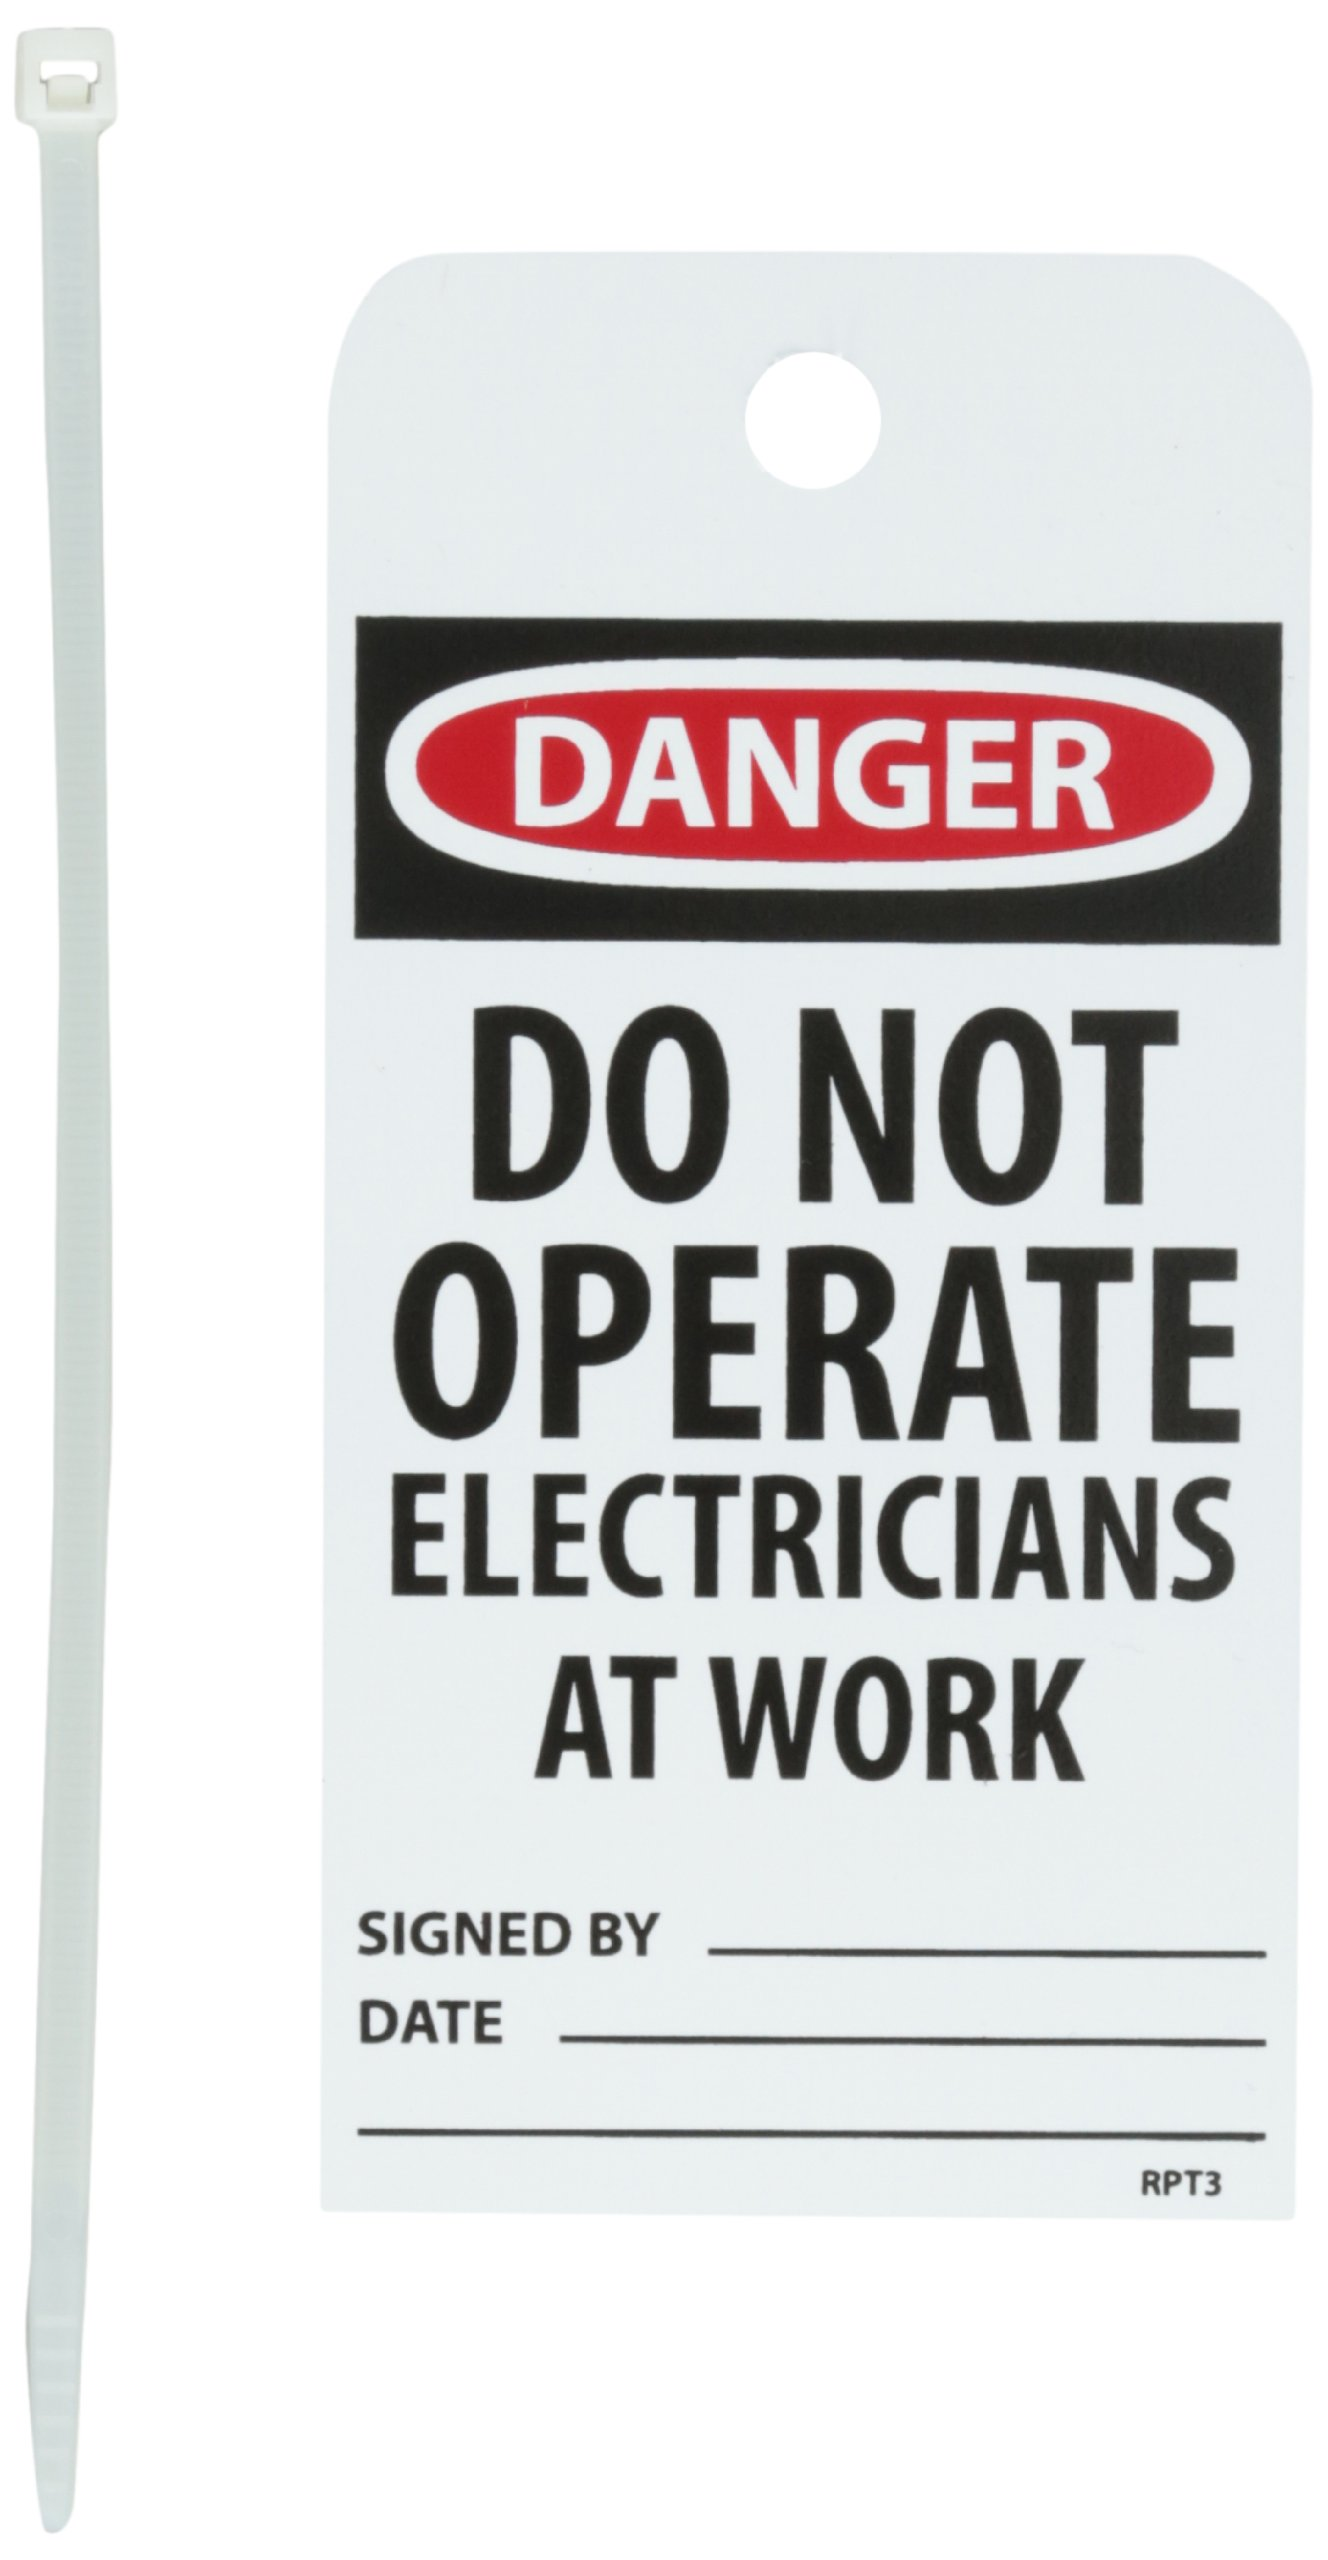 NMC RPT3 ''DANGER - DO NOT OPERATE ELECTRICIANS AT WORK'' Accident Prevention Tag, Unrippable Vinyl, 3'' Length, 6'' Height, Red, Black/Red on White (Pack of 25)